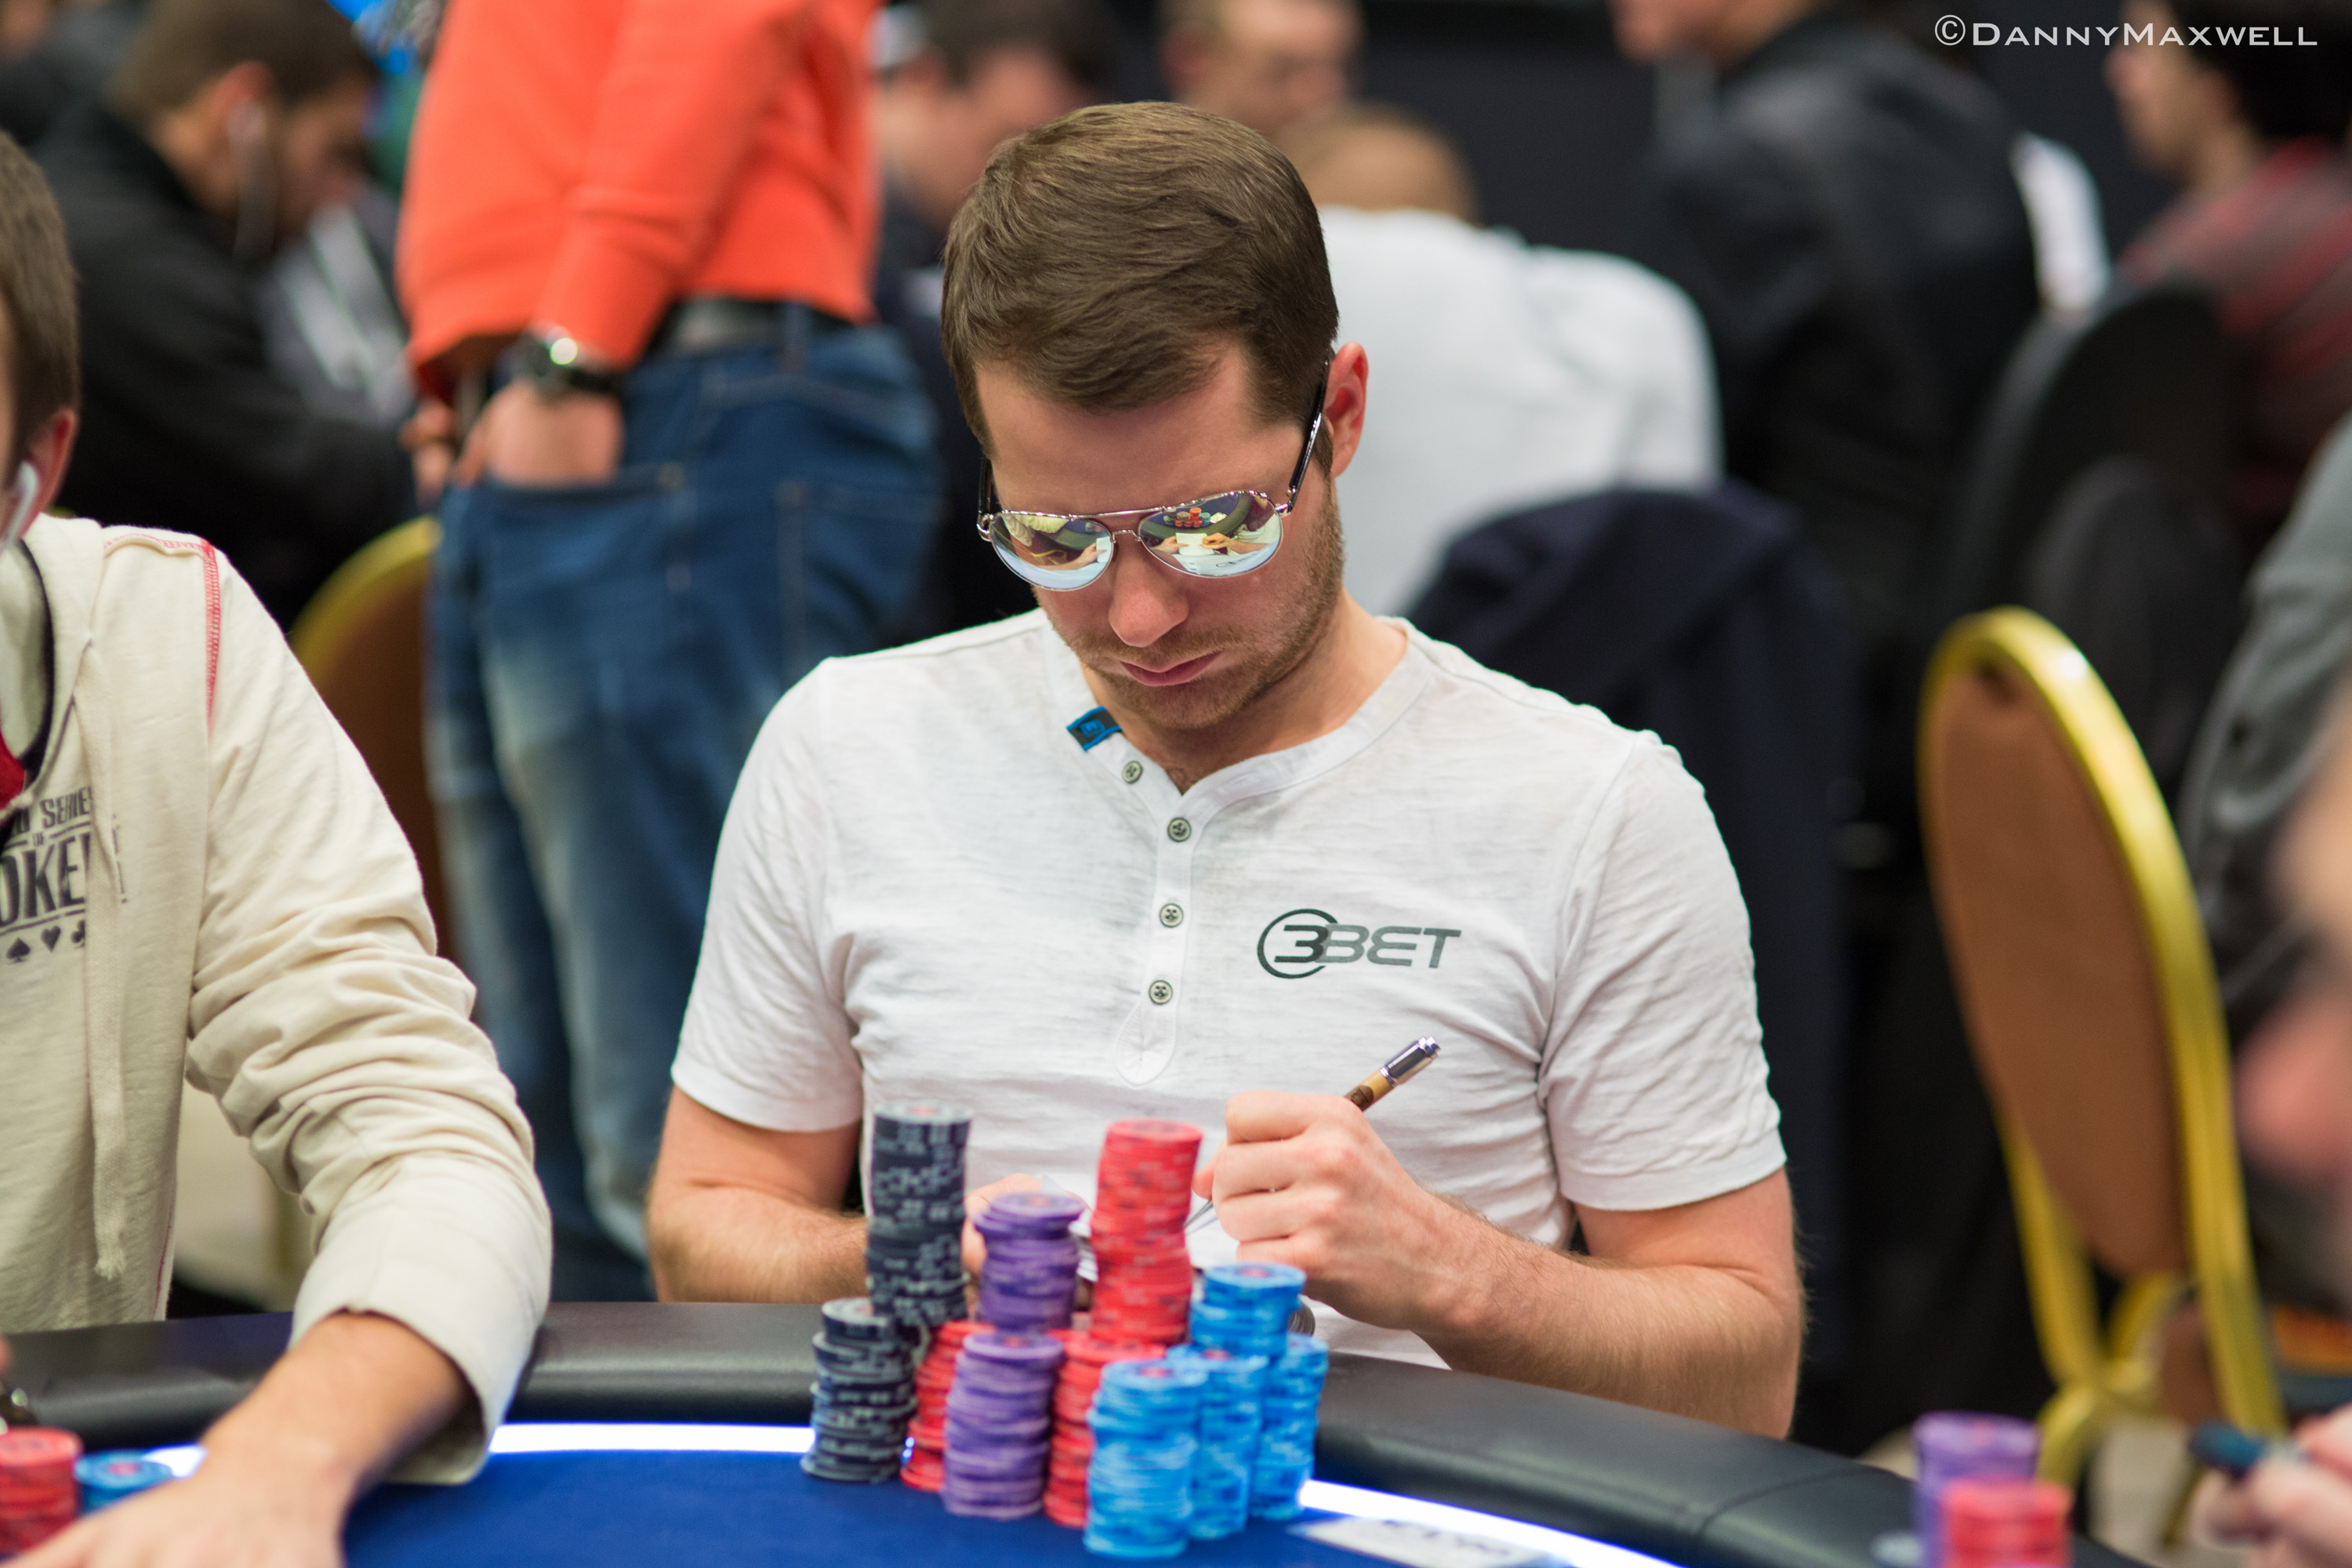 Know Your Foe: Poker Knowledge Is Power